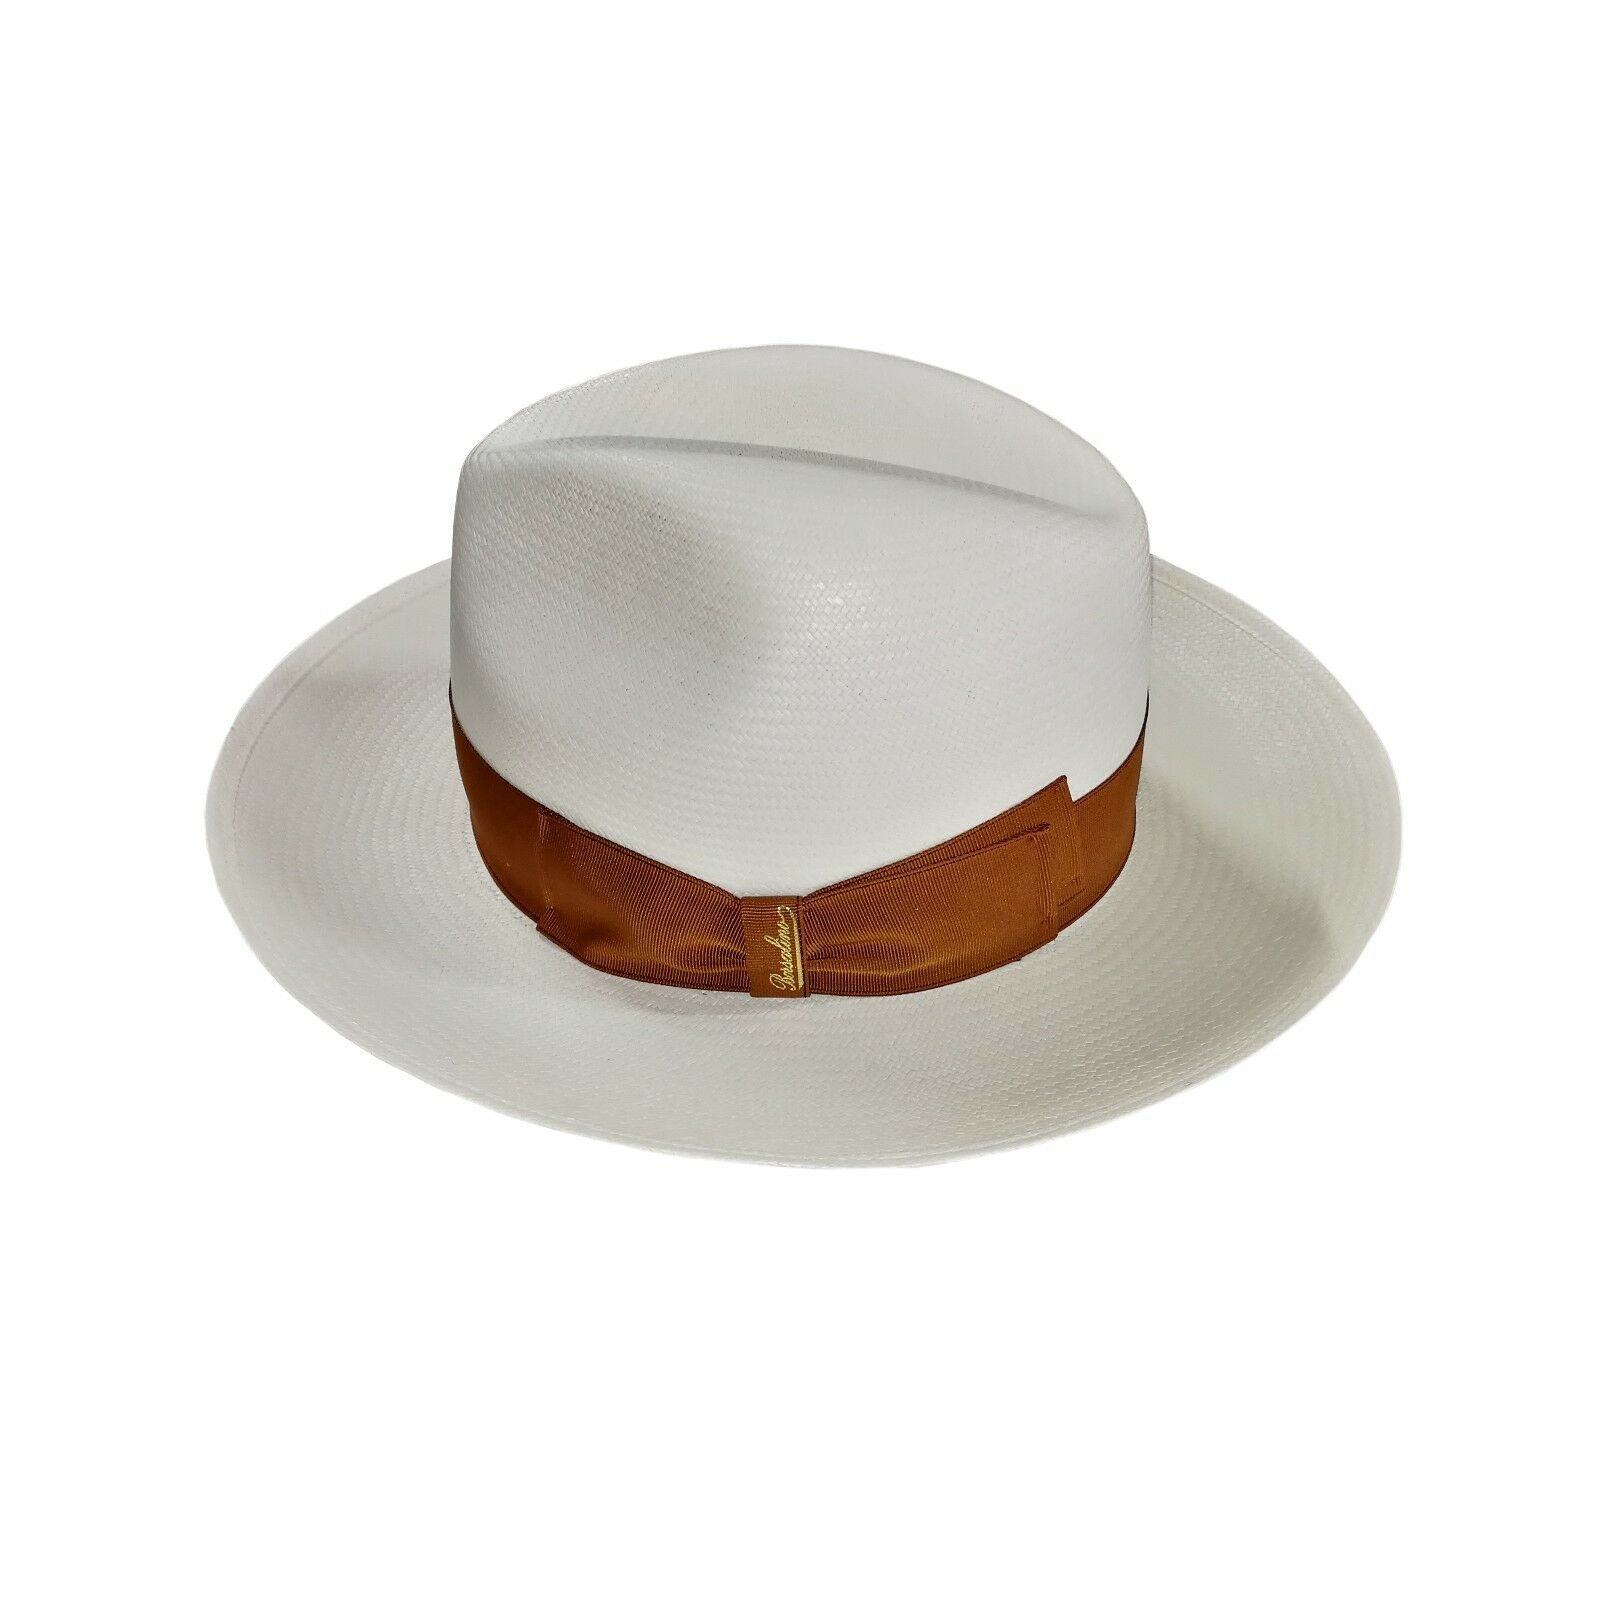 e1c7bc321682e9 Details about Hat Man Borsalino 140340 Panama Fine 100% Straw Made in Italy